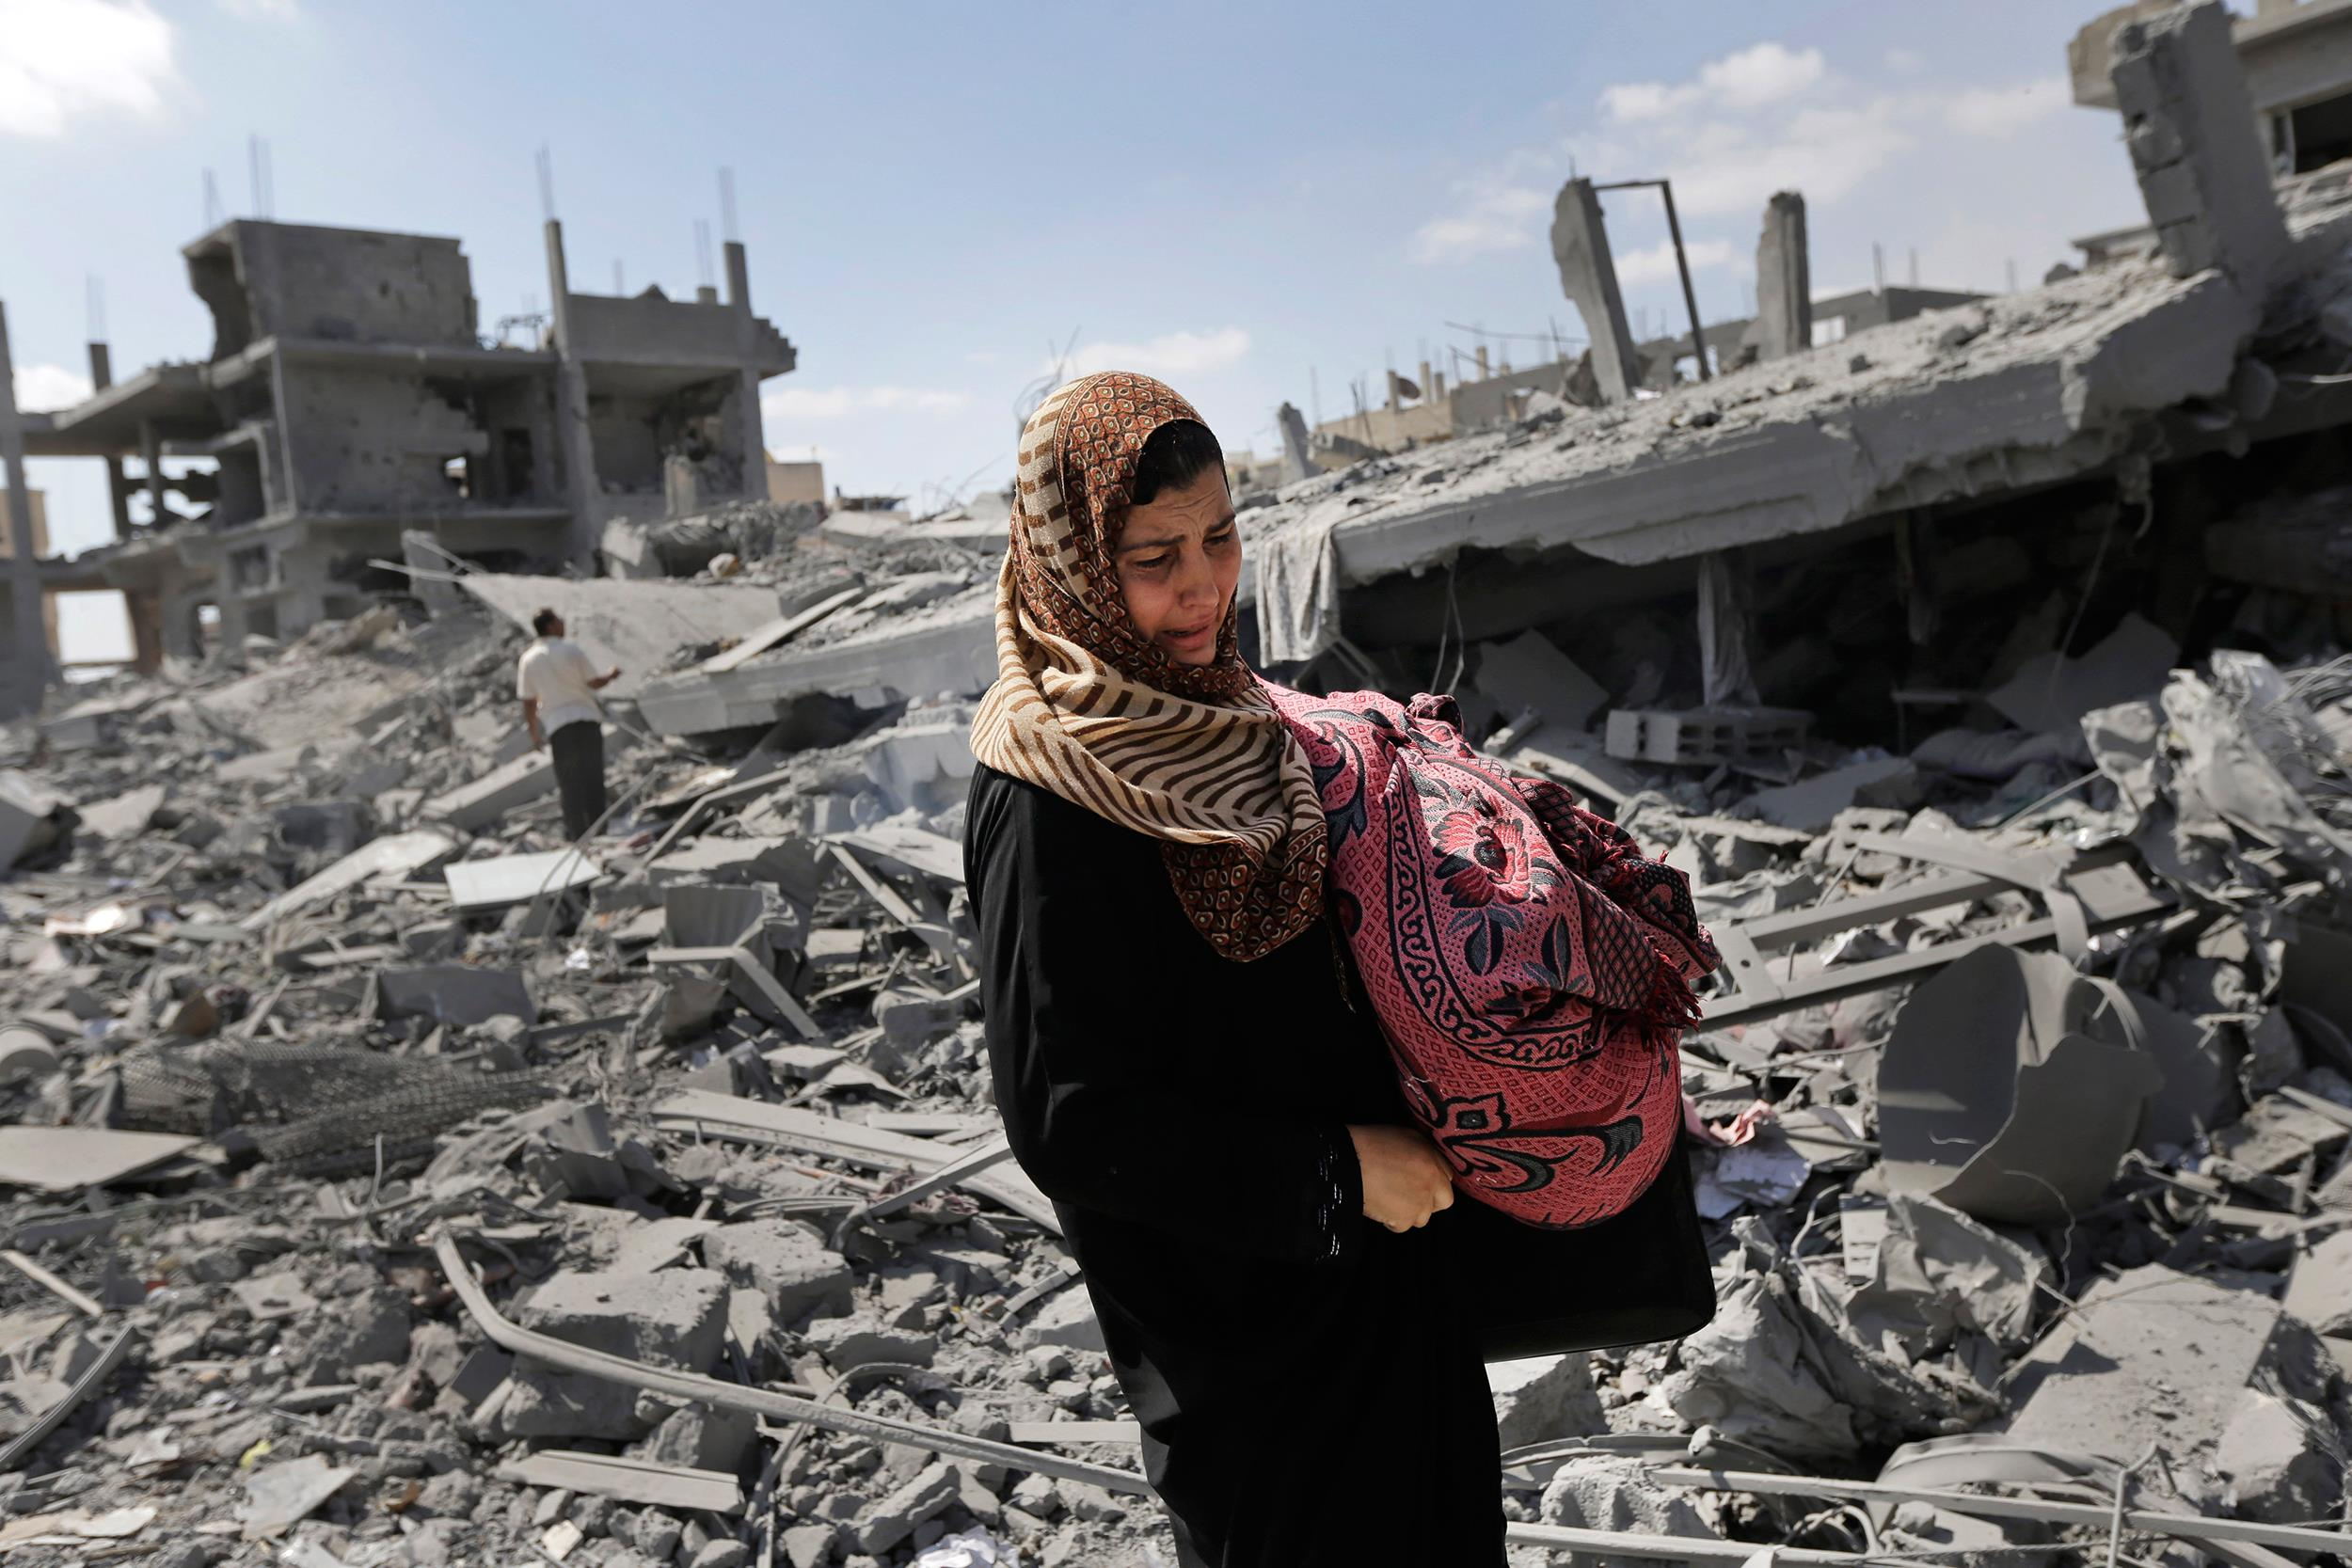 Image: A Palestinian woman carries her belongings past the rubble of houses destroyed by Israeli strikes in Beit Hanoun, northern Gaza Strip